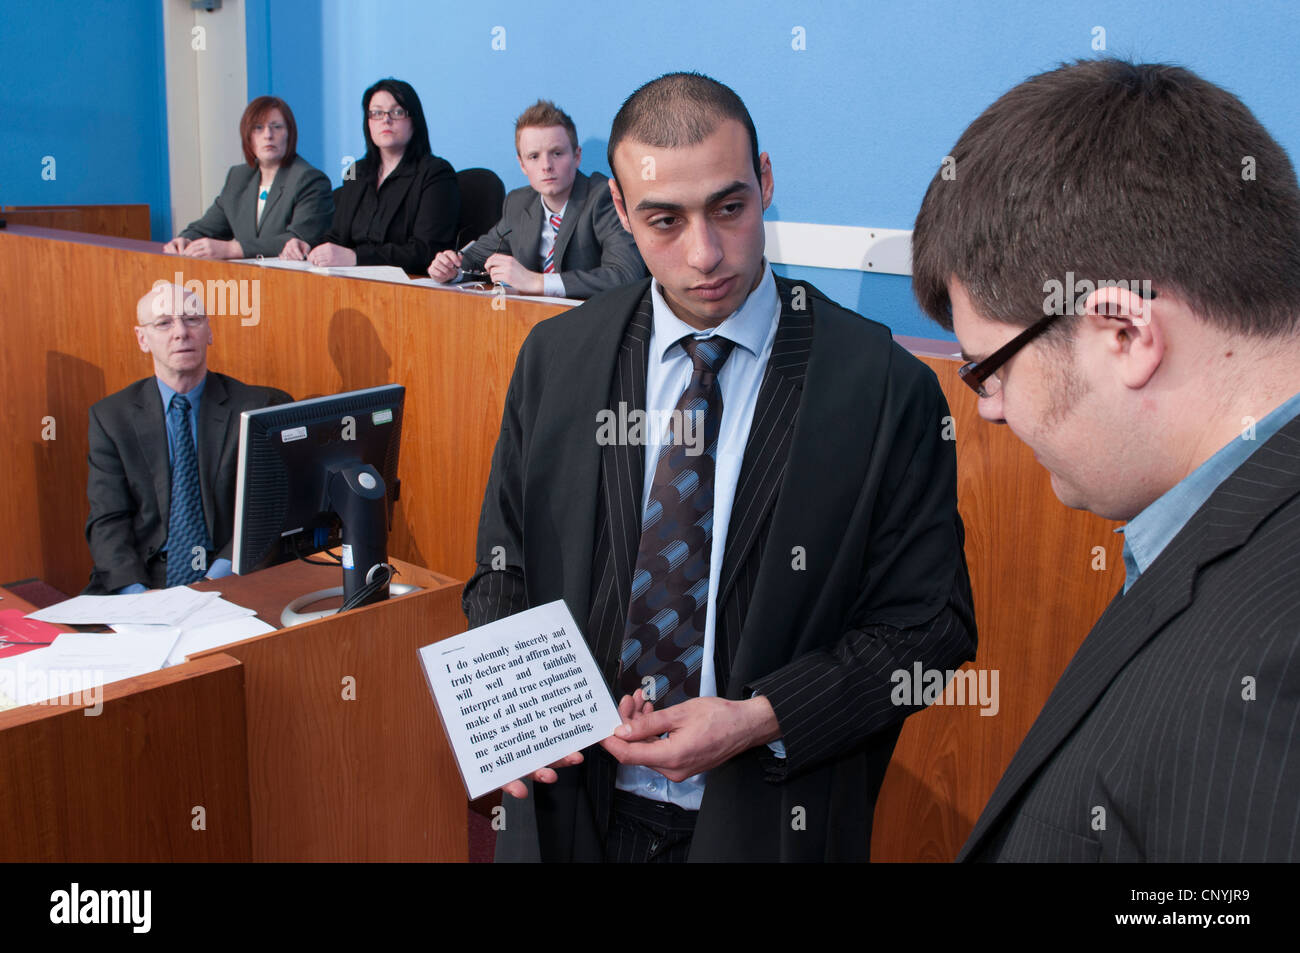 Swearing in Your Witness Abroad | Planet Depos Blog